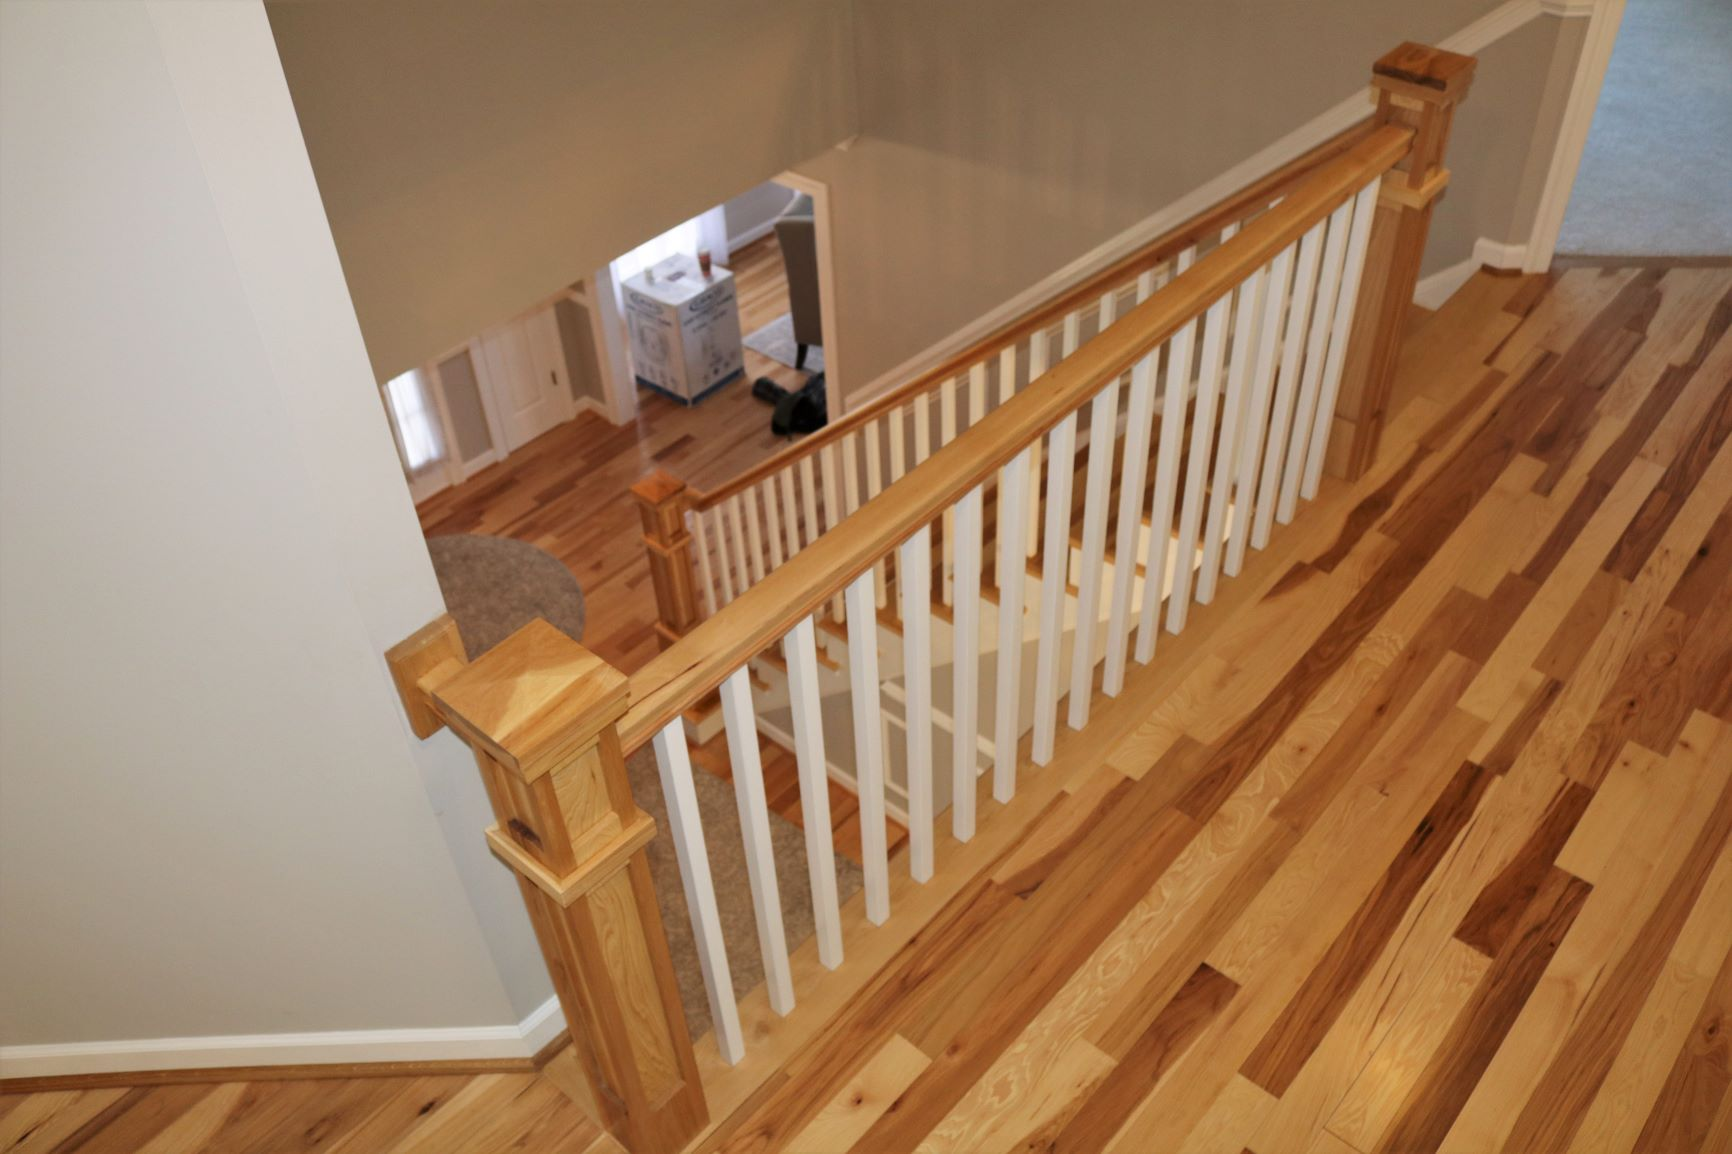 HickoryStairs-Full Remodel-ArlingtonVA-8